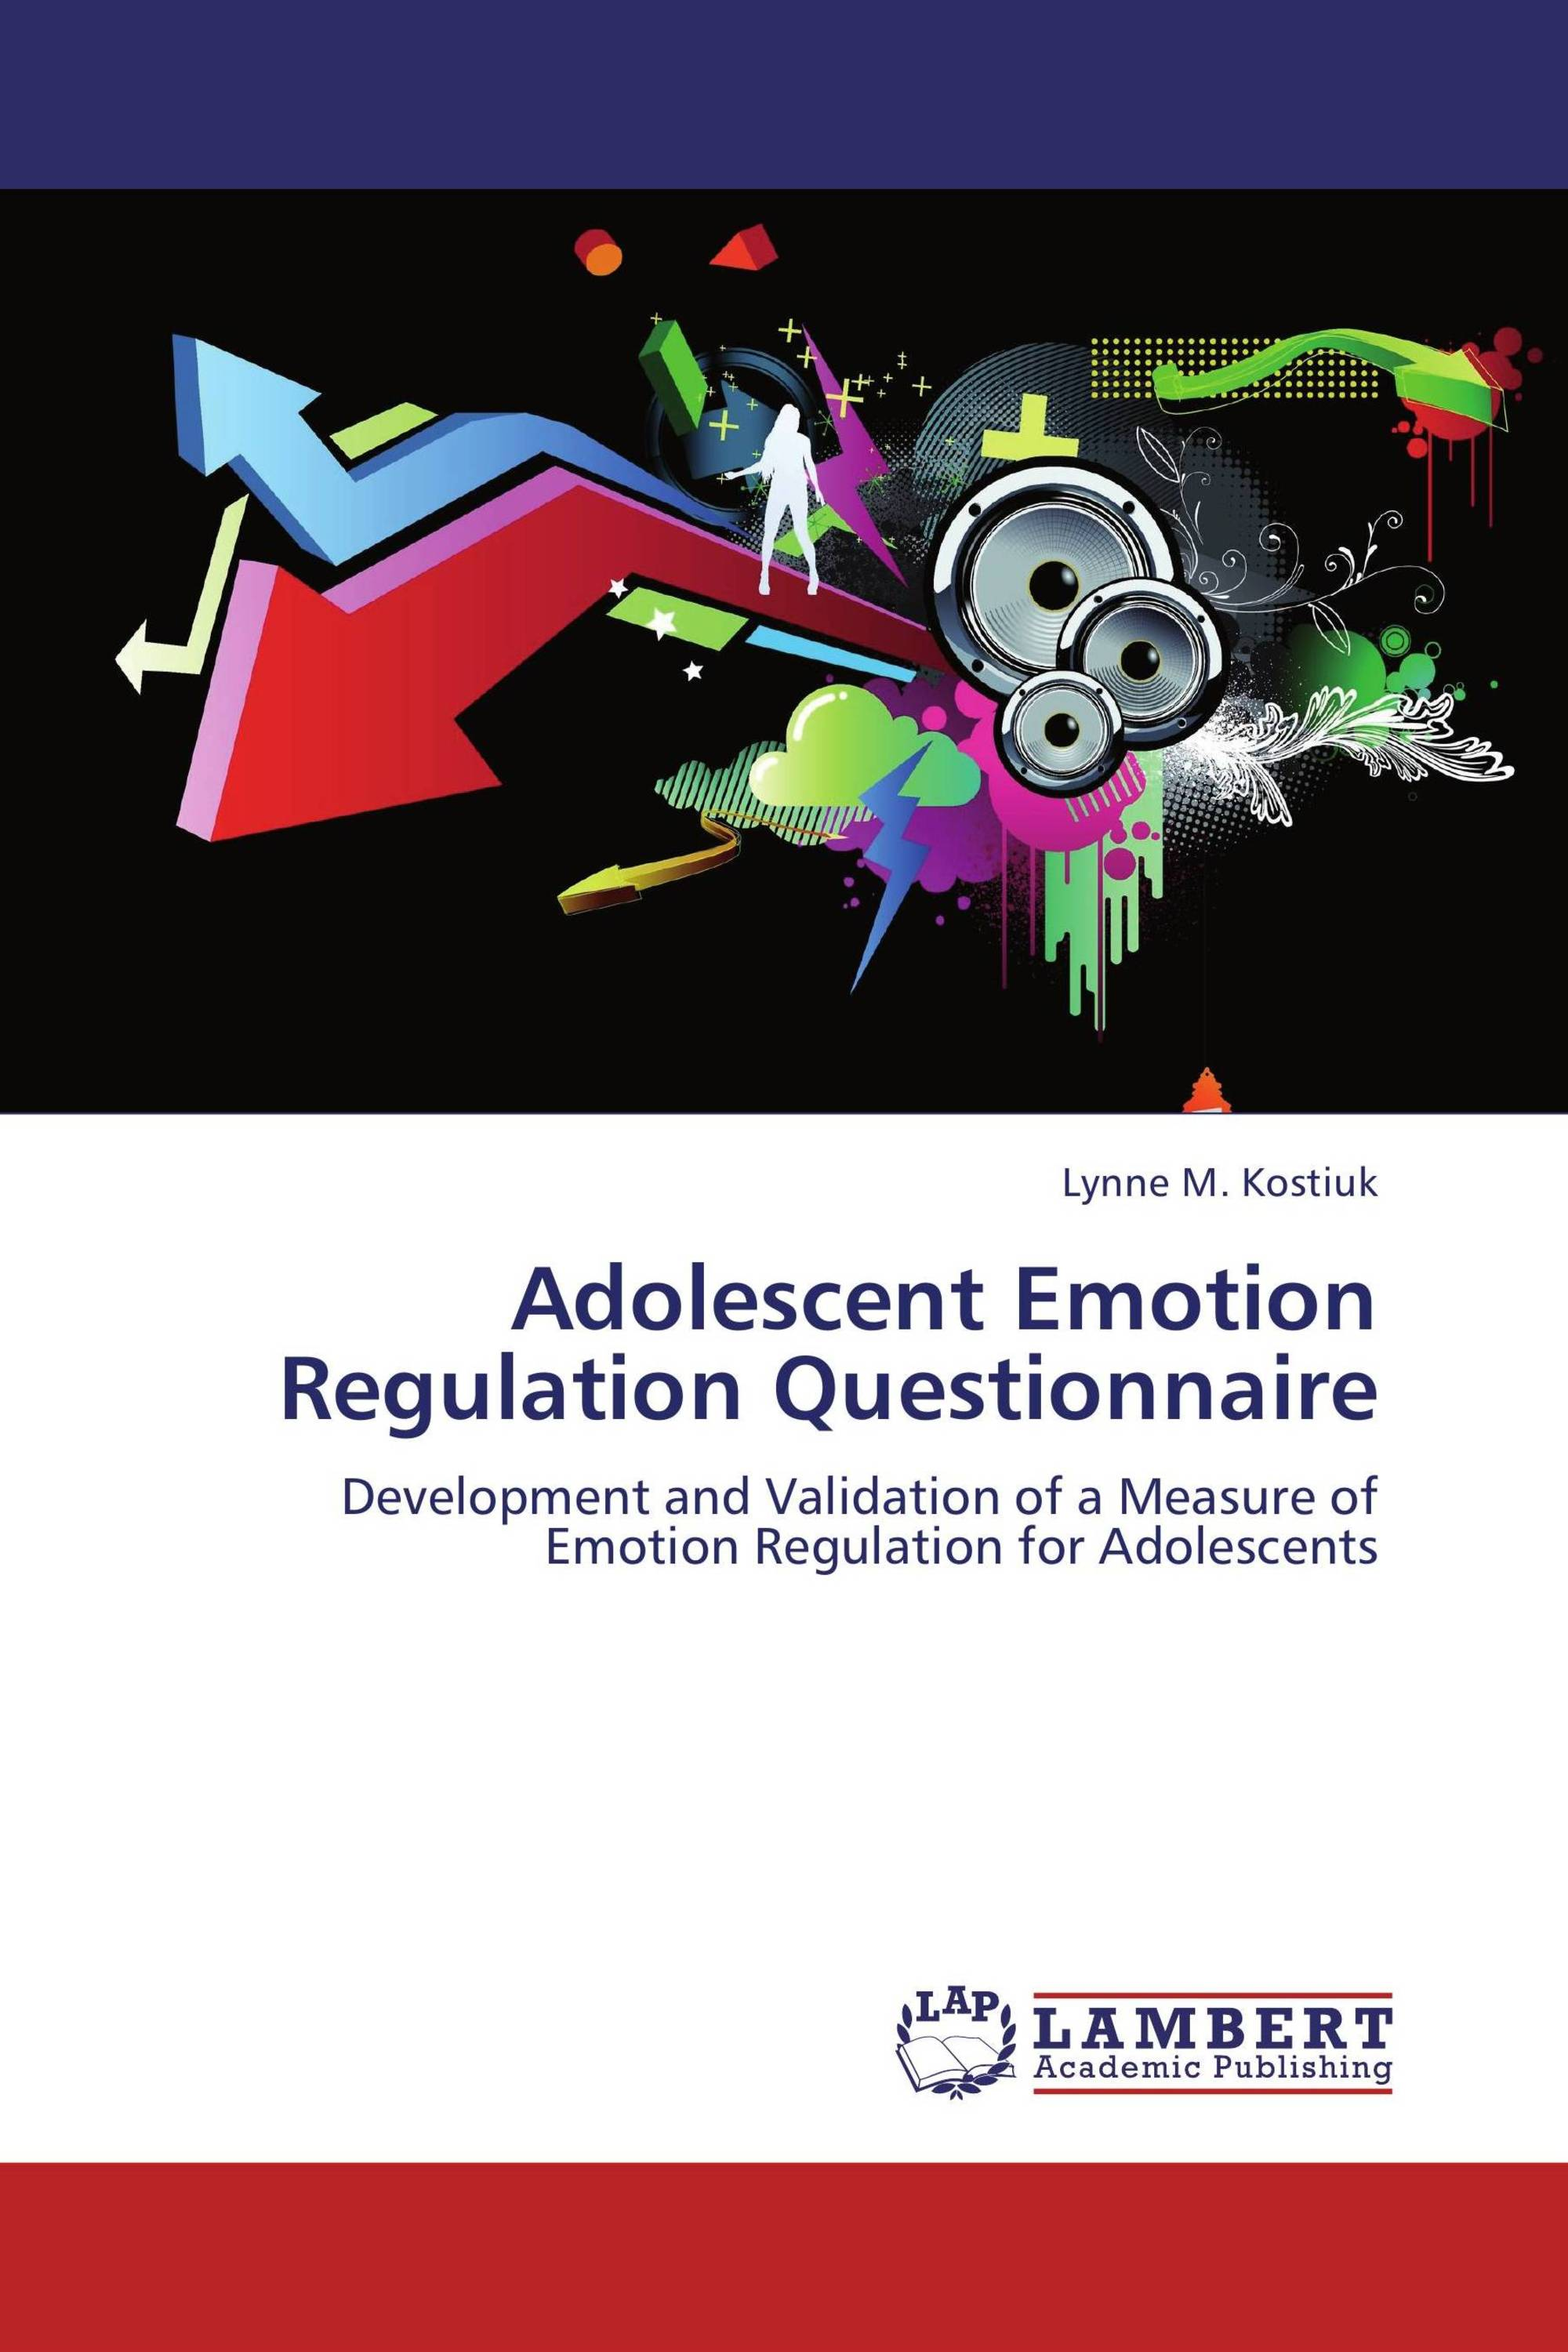 Adolescent Emotion Regulation Questionnaire